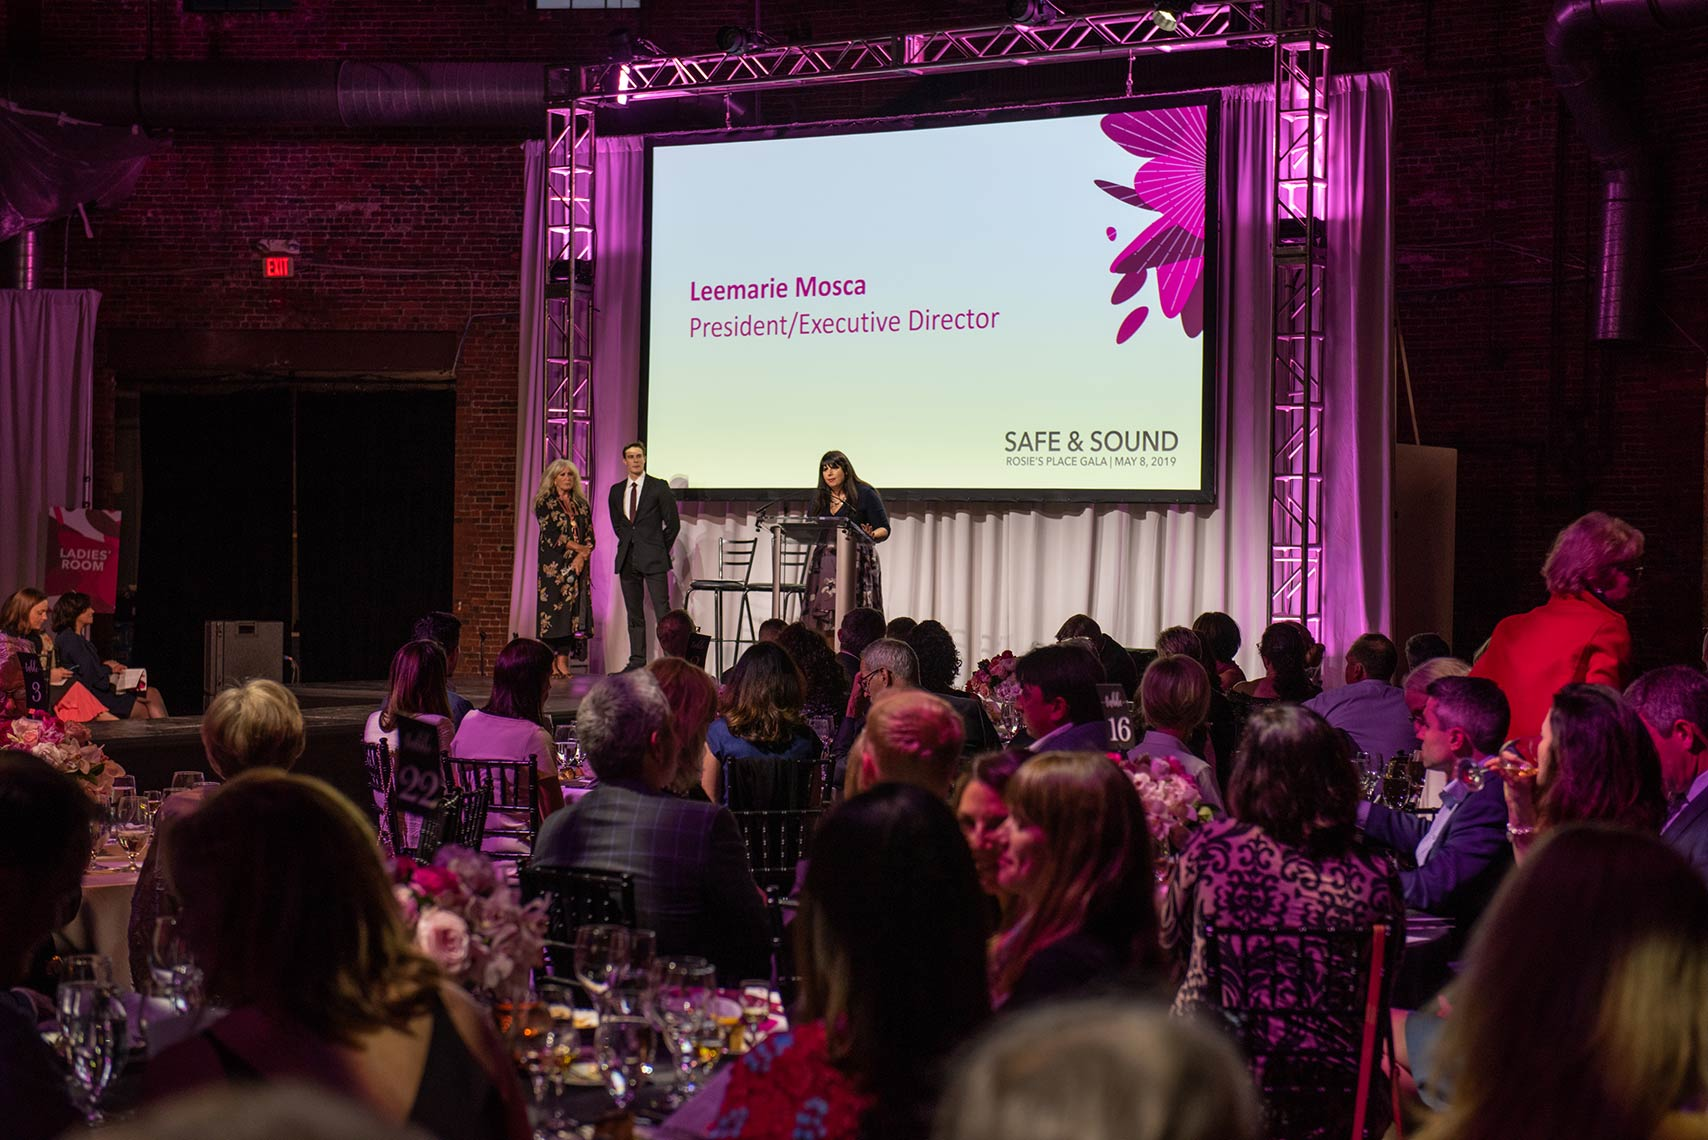 Leemarie Mosca speaking on stage at the Safe and Sound gala